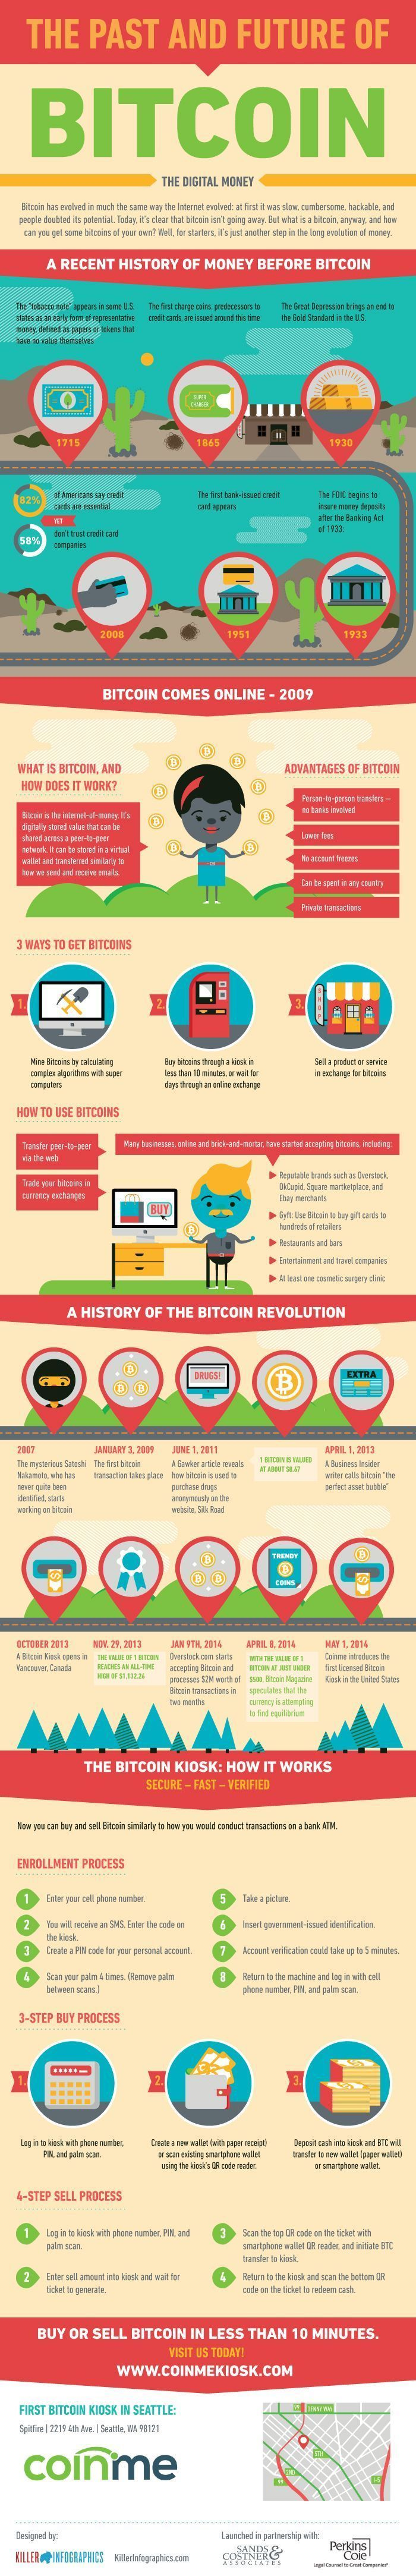 The Past and Future of Bitcoin [Infographic] 700 digital coins in the world. None oriented towards actually being used as currency. That all changes now! Save money with retail shopping while investing in the hottest crypto coin ever! #BitCoinMiningAnyone?